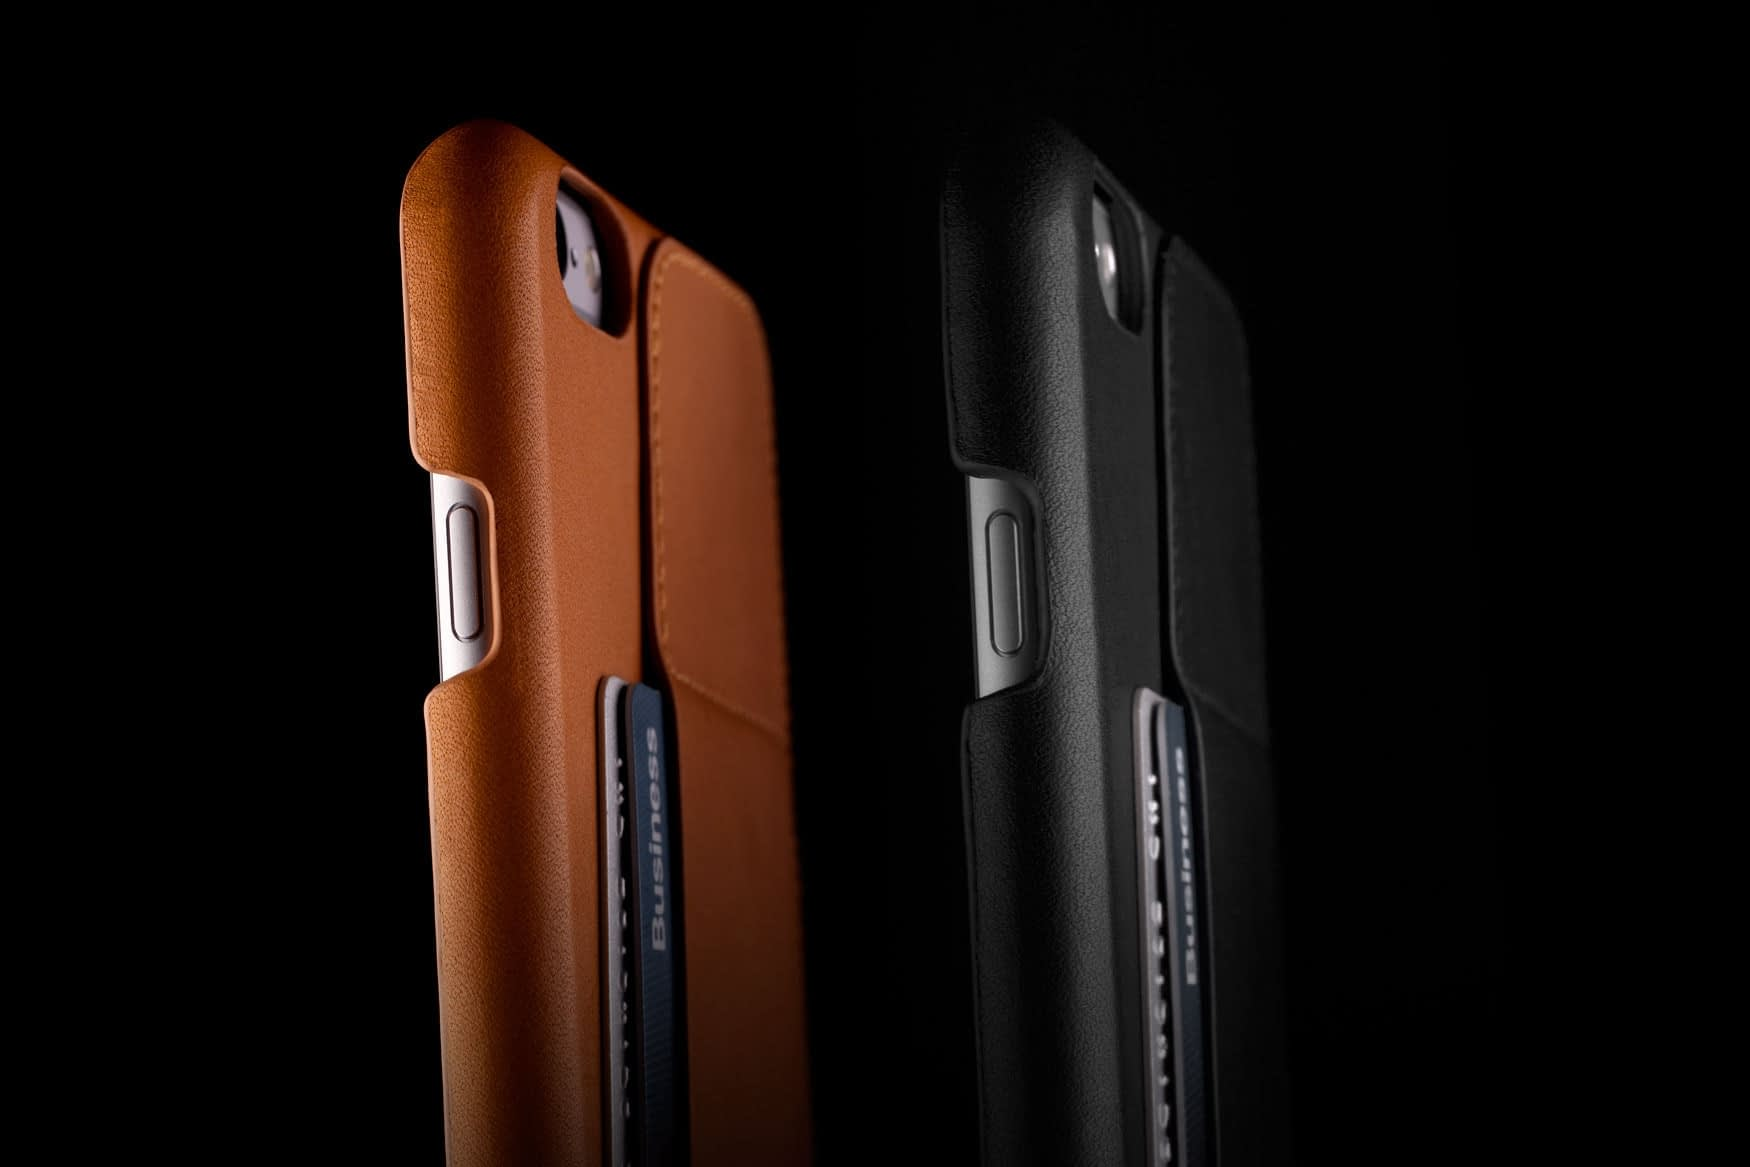 Leather Wallet Case 80° for iPhone 6 Plus Tan Lifestyle 0212